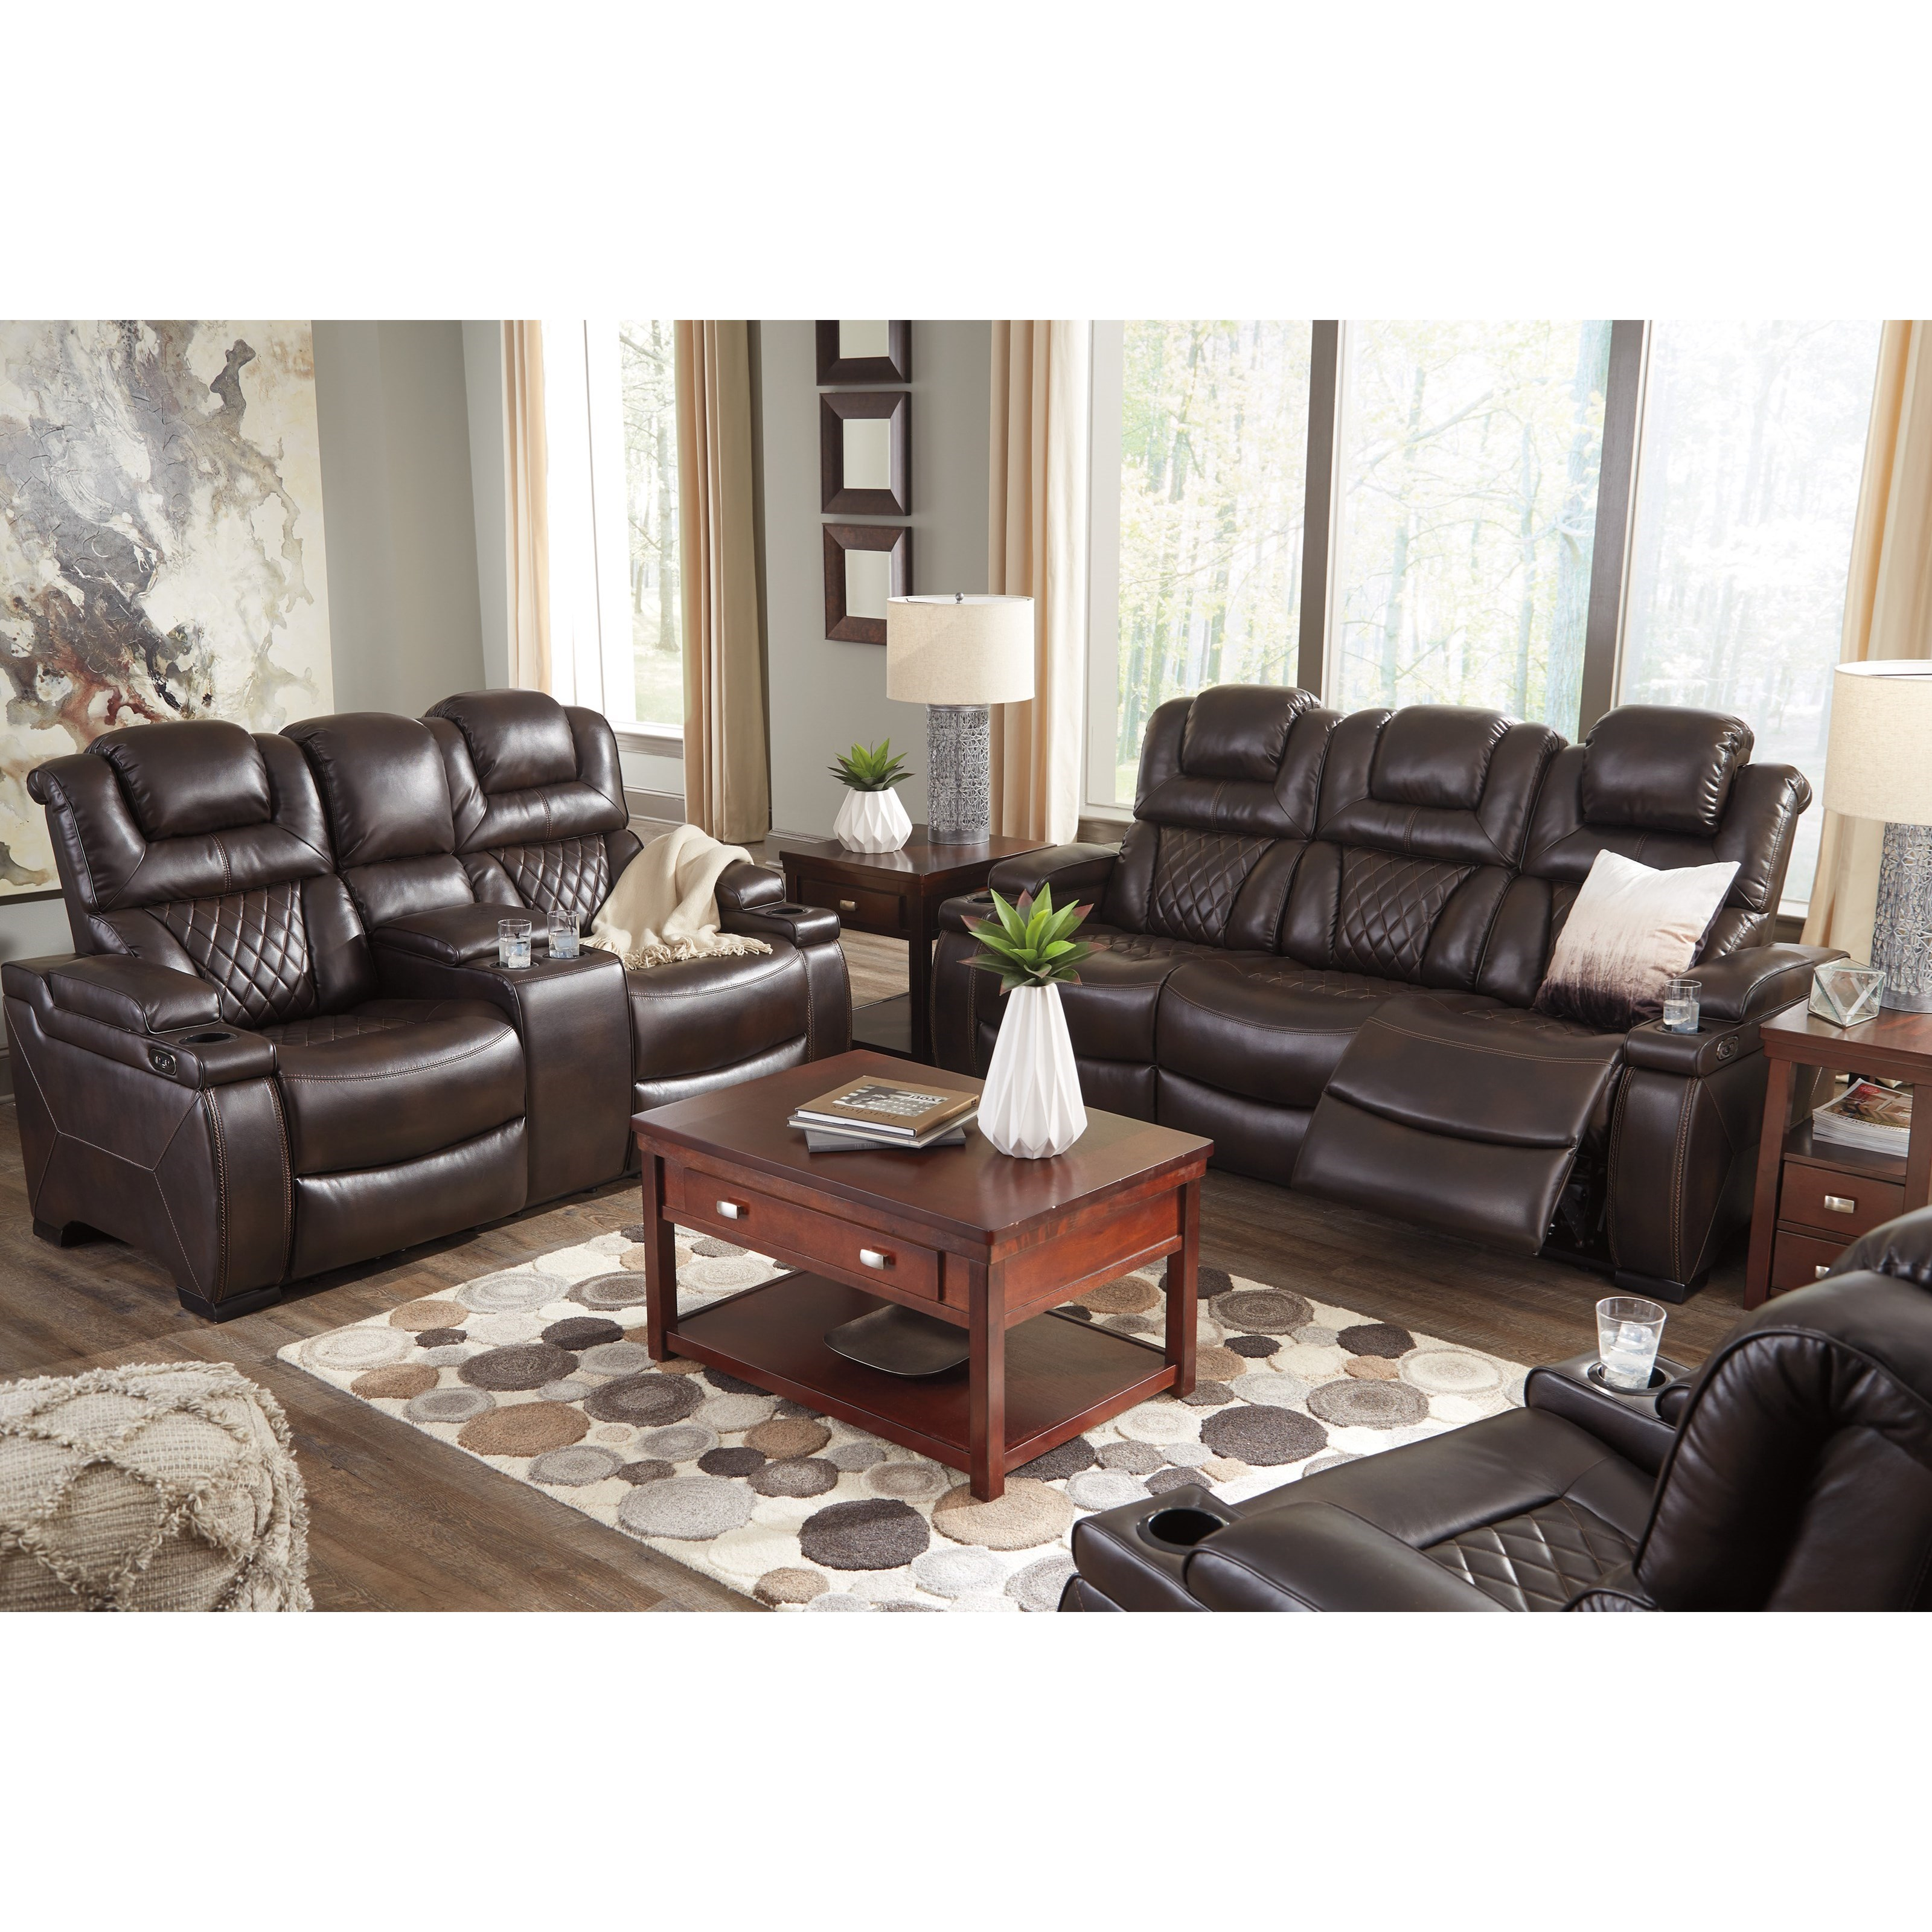 Signature design by ashley warnerton reclining living room for Living room furniture groups